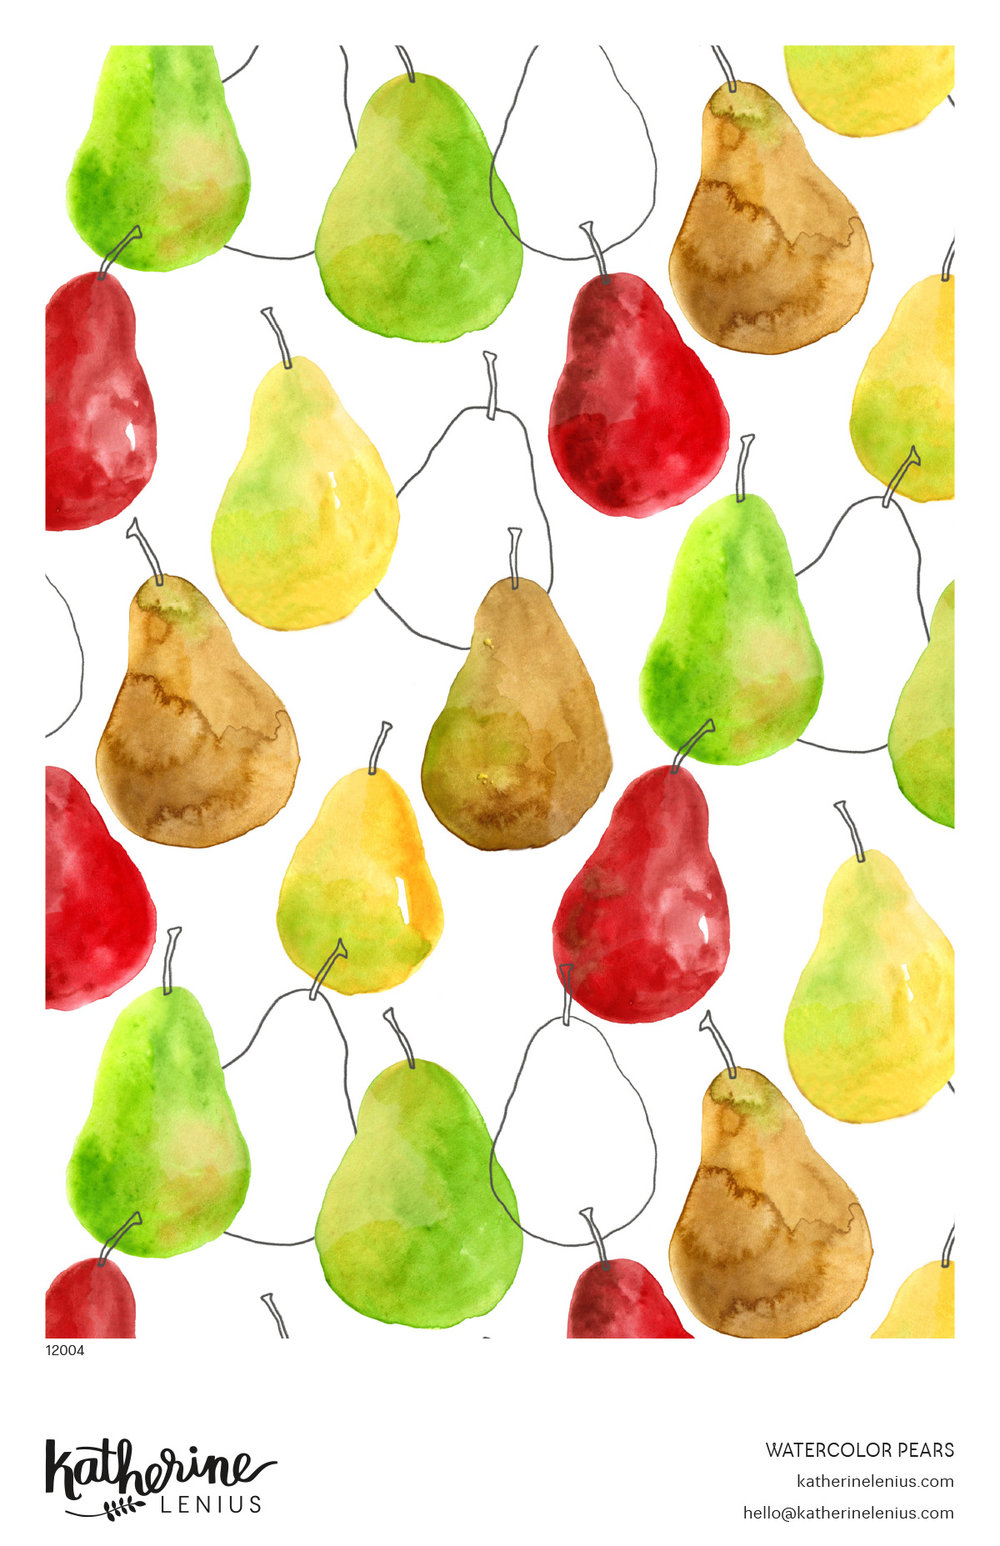 KL_12004_Watercolor Pears copy.jpg